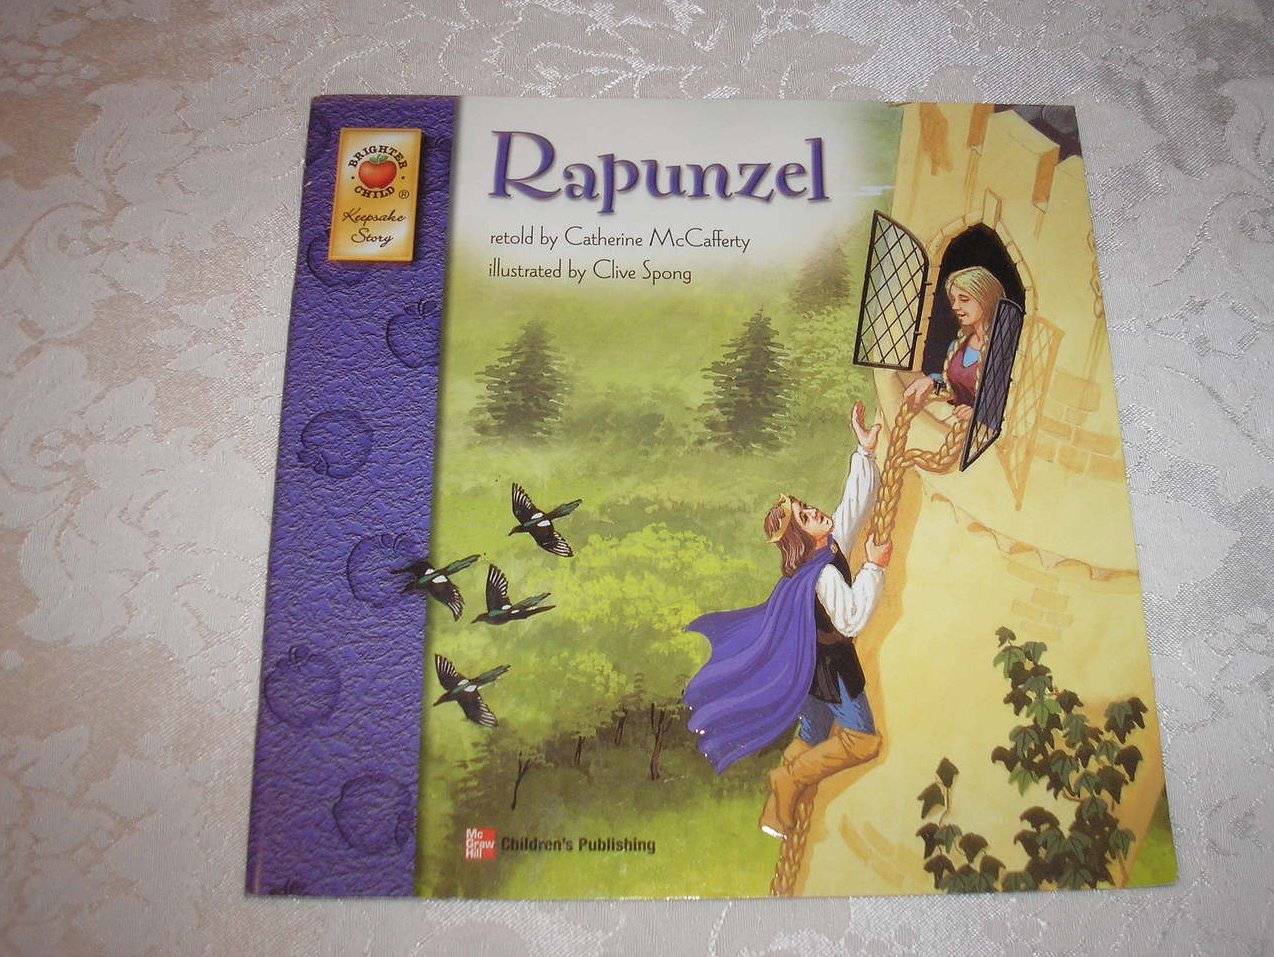 Rapunzel retold by Catherine McCafferty very good sc